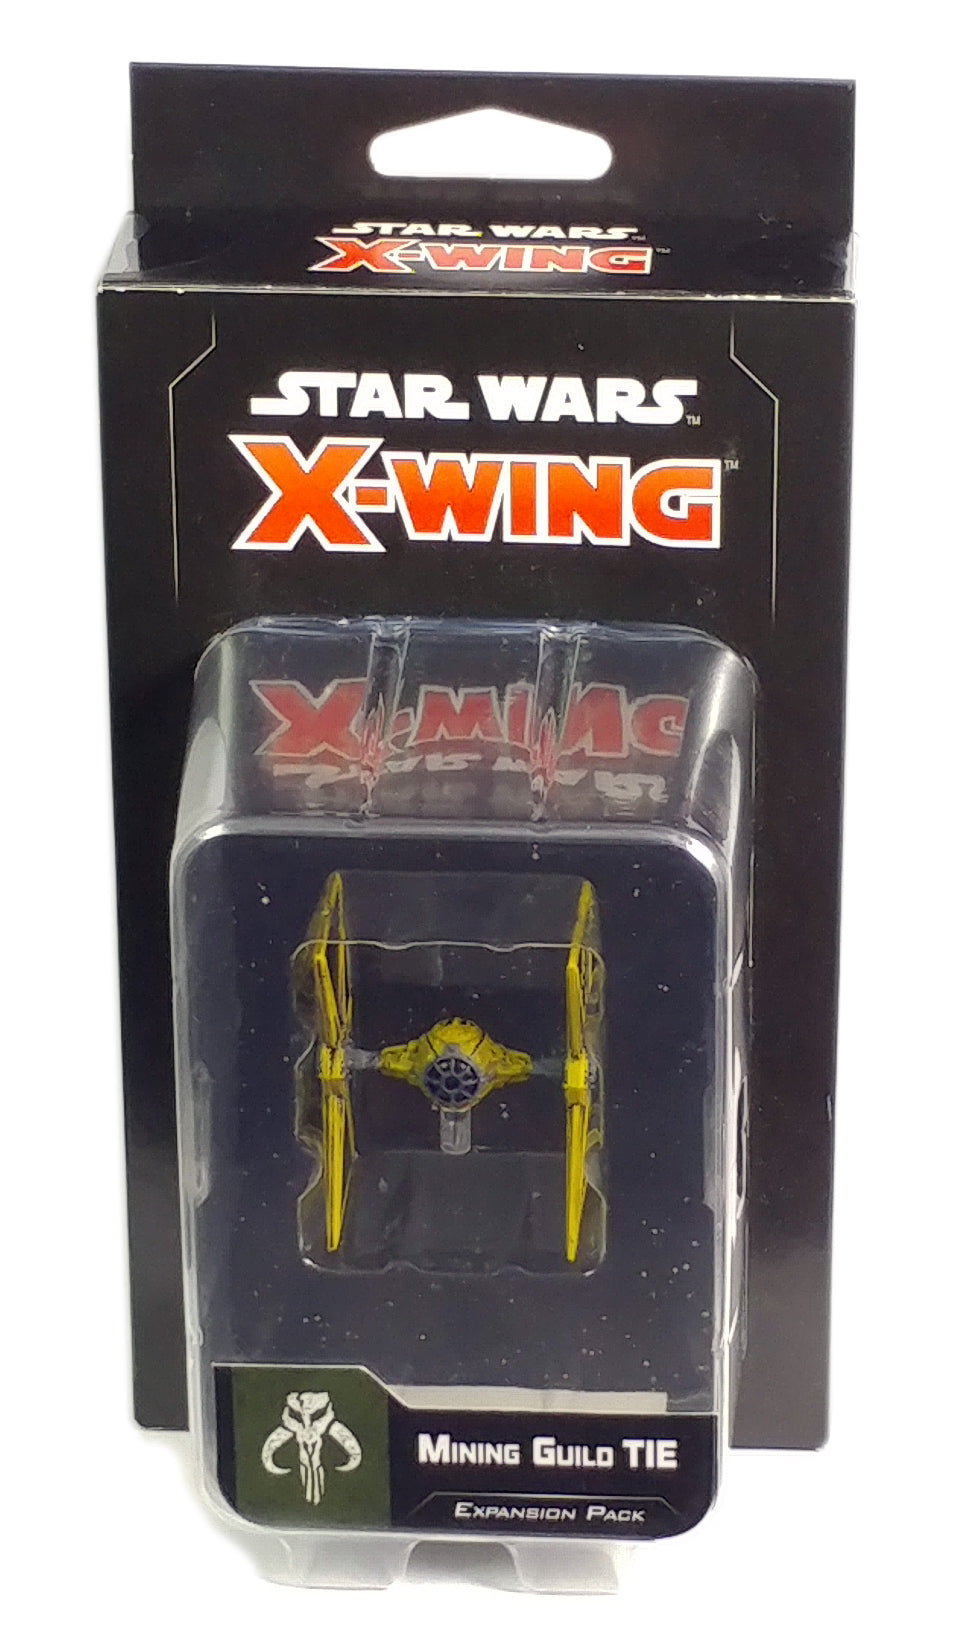 Star Wars X-Wing 2.0 Mining Guild Tie Expansion Pack